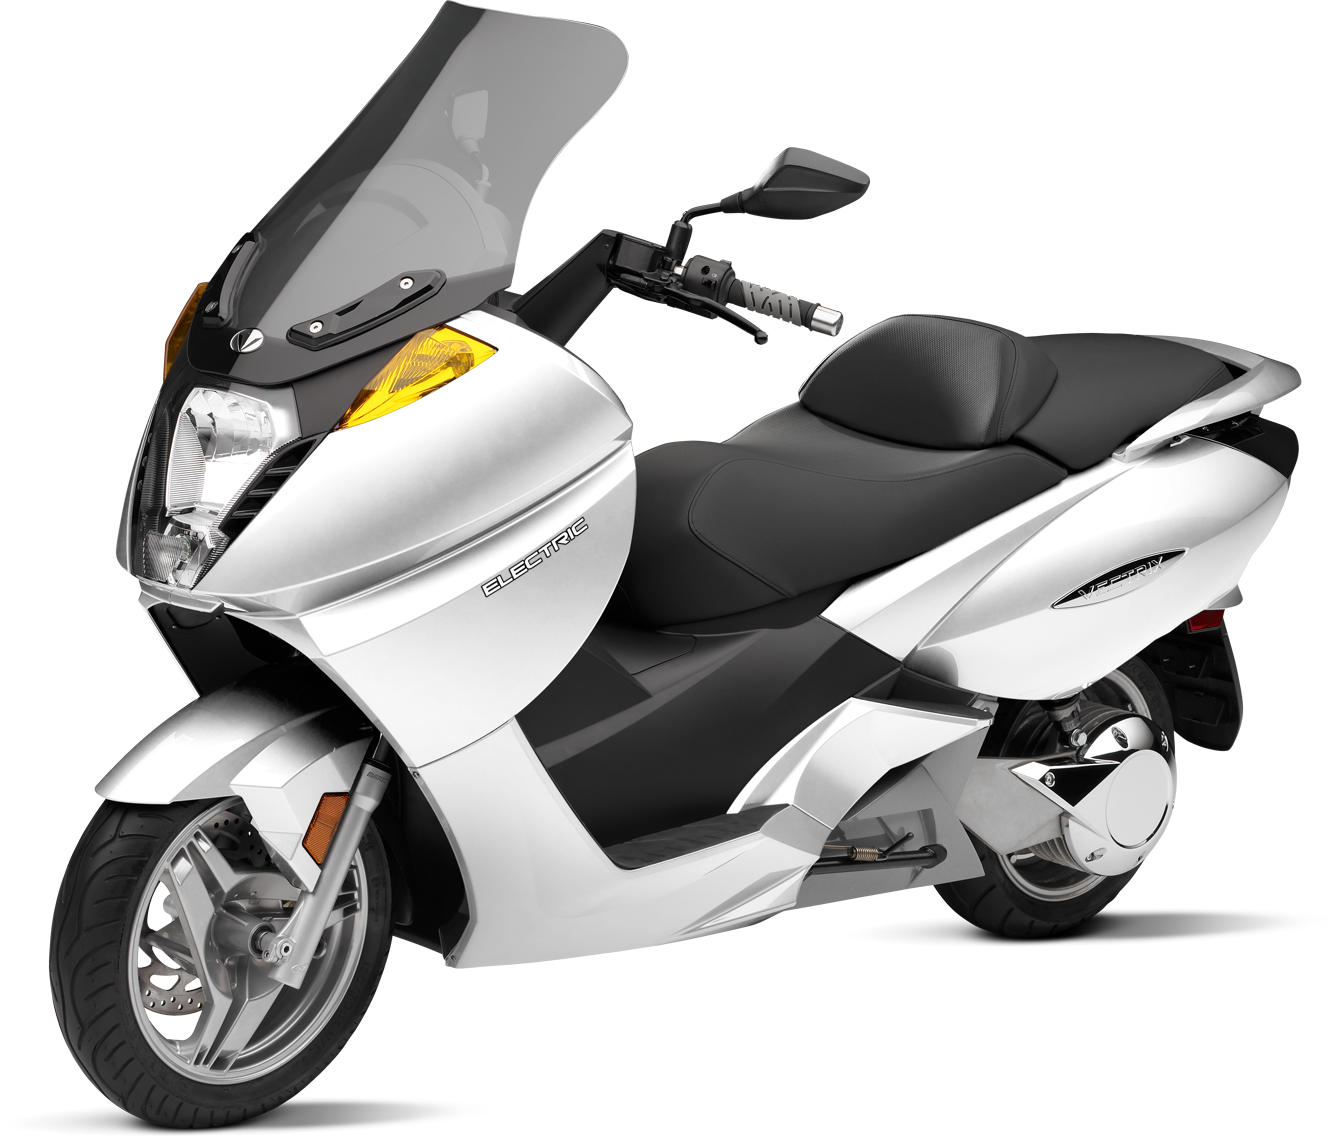 Scooter png images free. Motorcycle clipart scooty